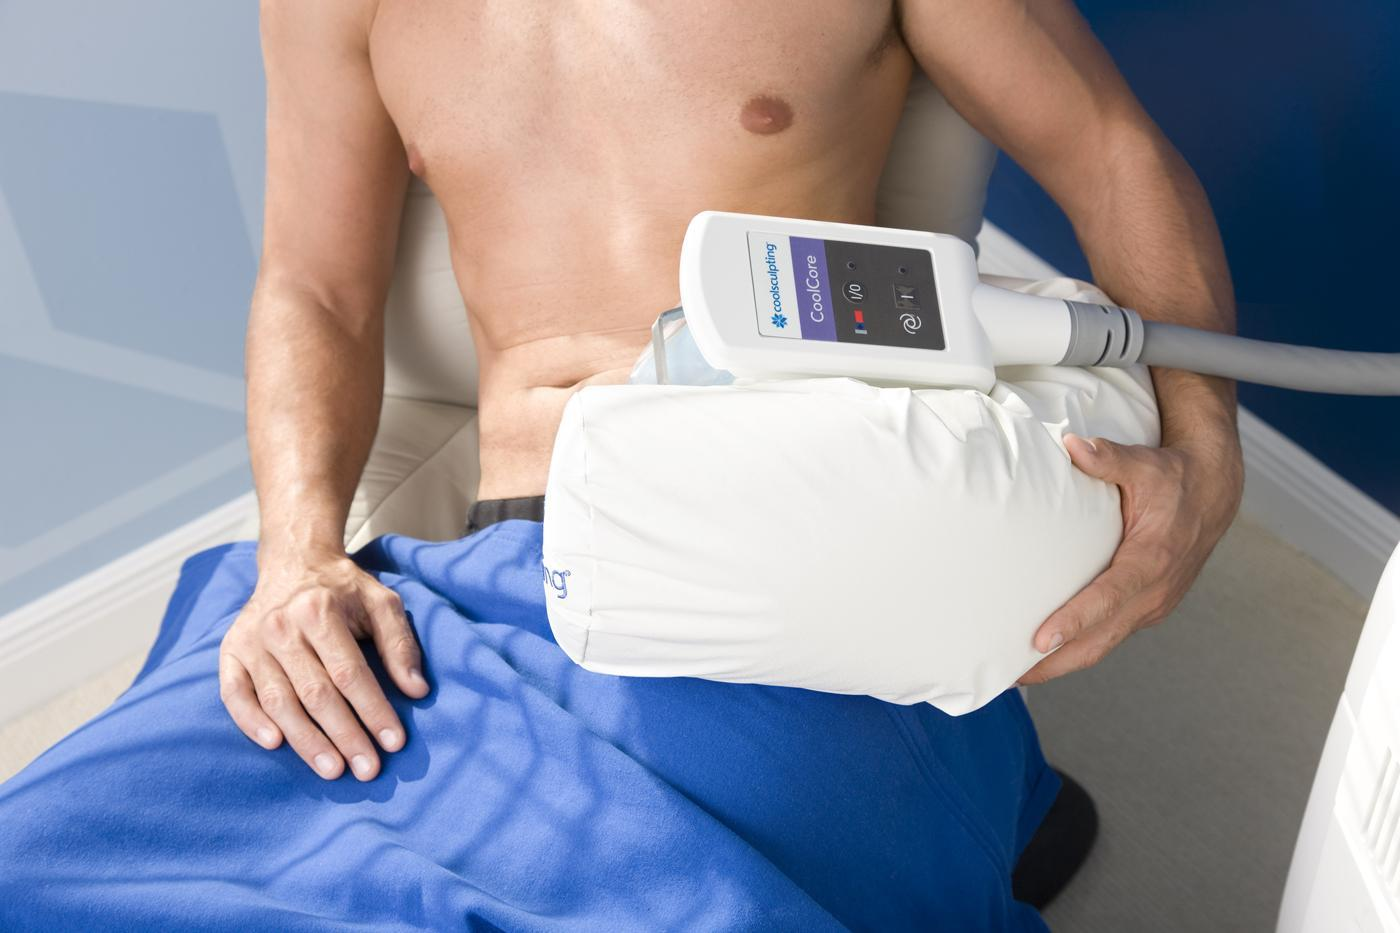 coolsculpting prices in ottawa ontario